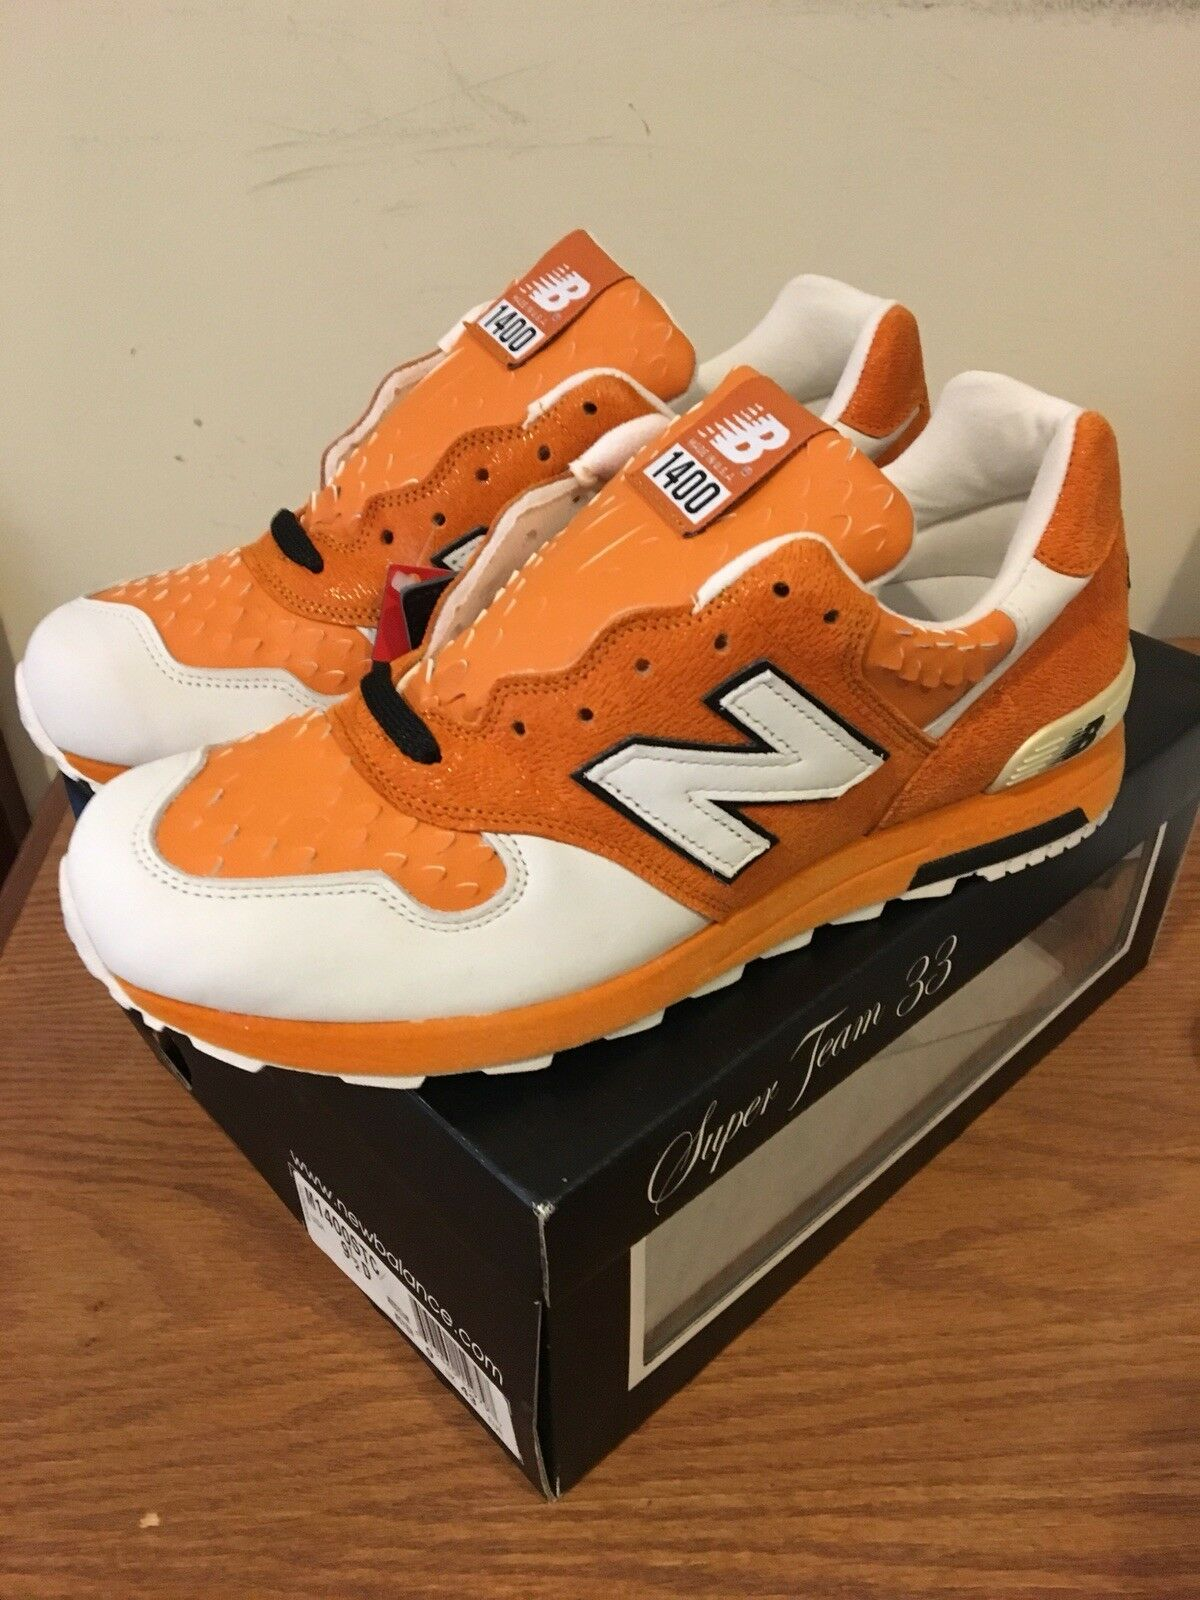 New Balance 1400 STC Clown Fish Super Team 33 orange Size 9.5 Made In USA New